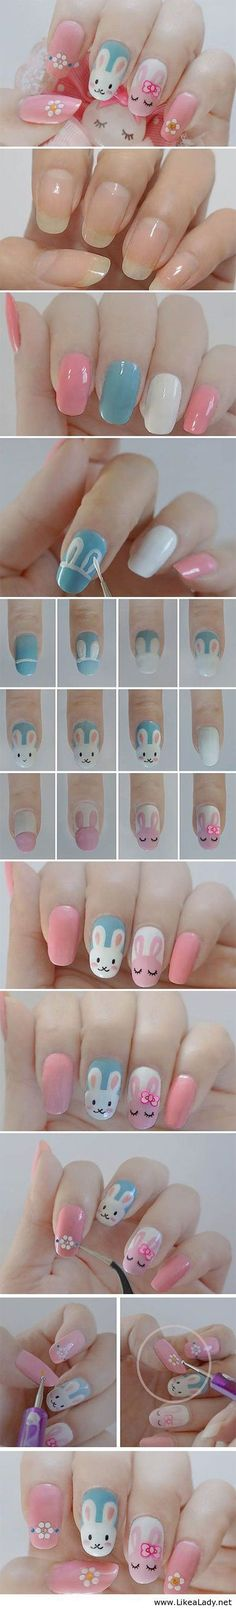 Elegant Easter Nail Art Tutorials For Beginners & Learners 2014